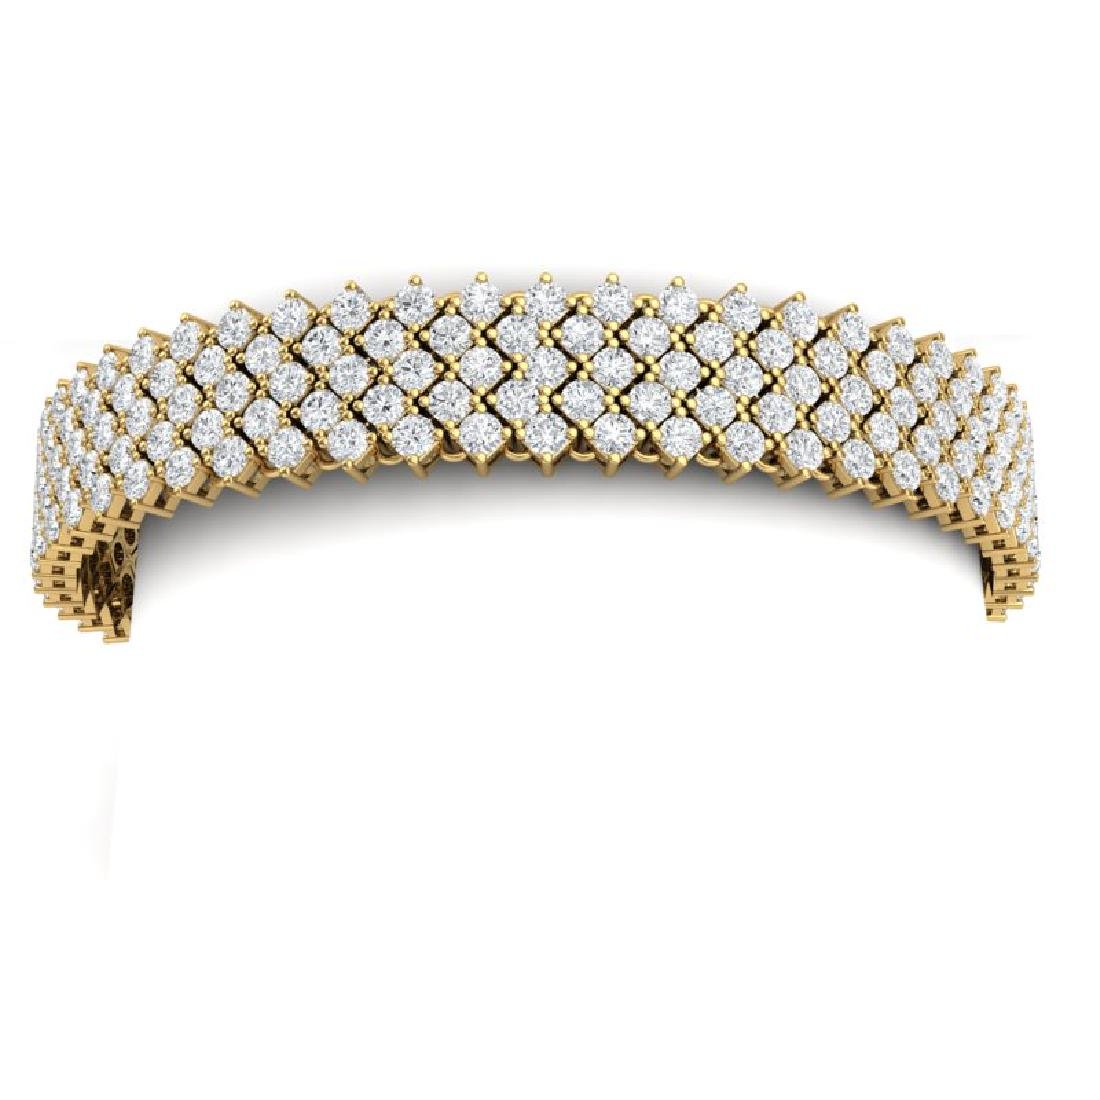 20 CTW Certified VS/SI Diamond Bracelet 18K Yellow Gold